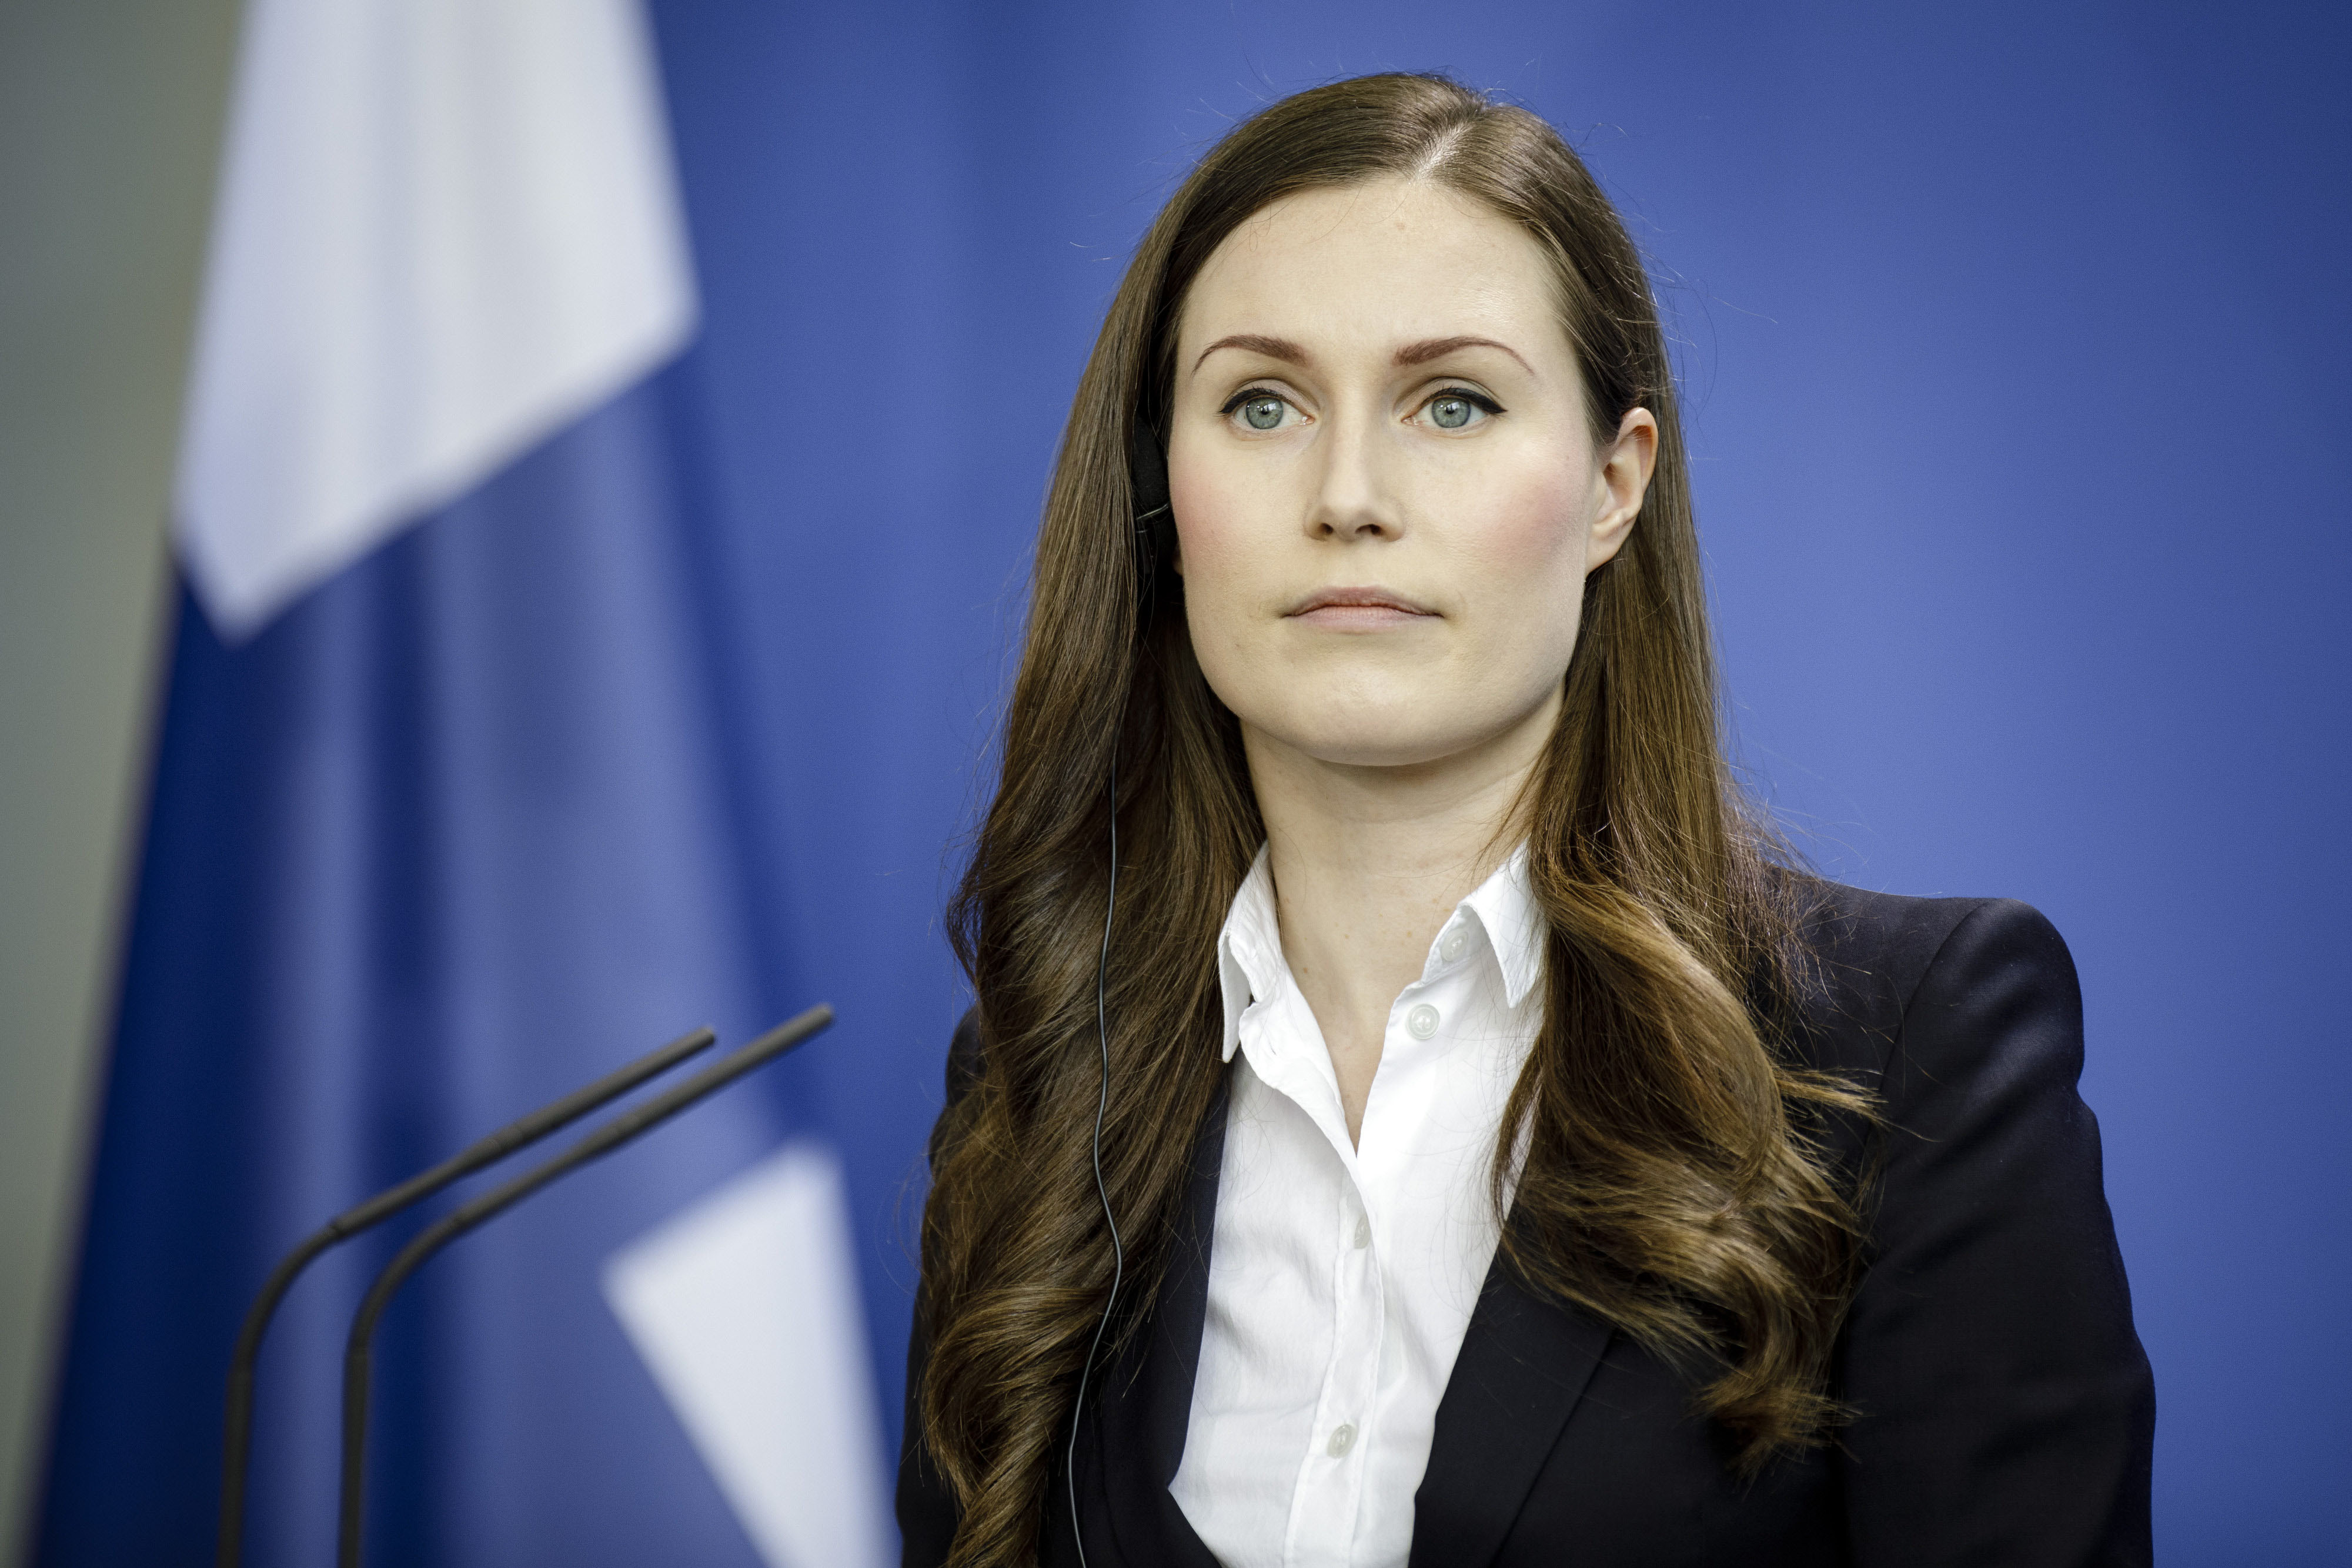 Finnish Prime Minister Sanna Marin attends a press conference in Berlin on February 19.